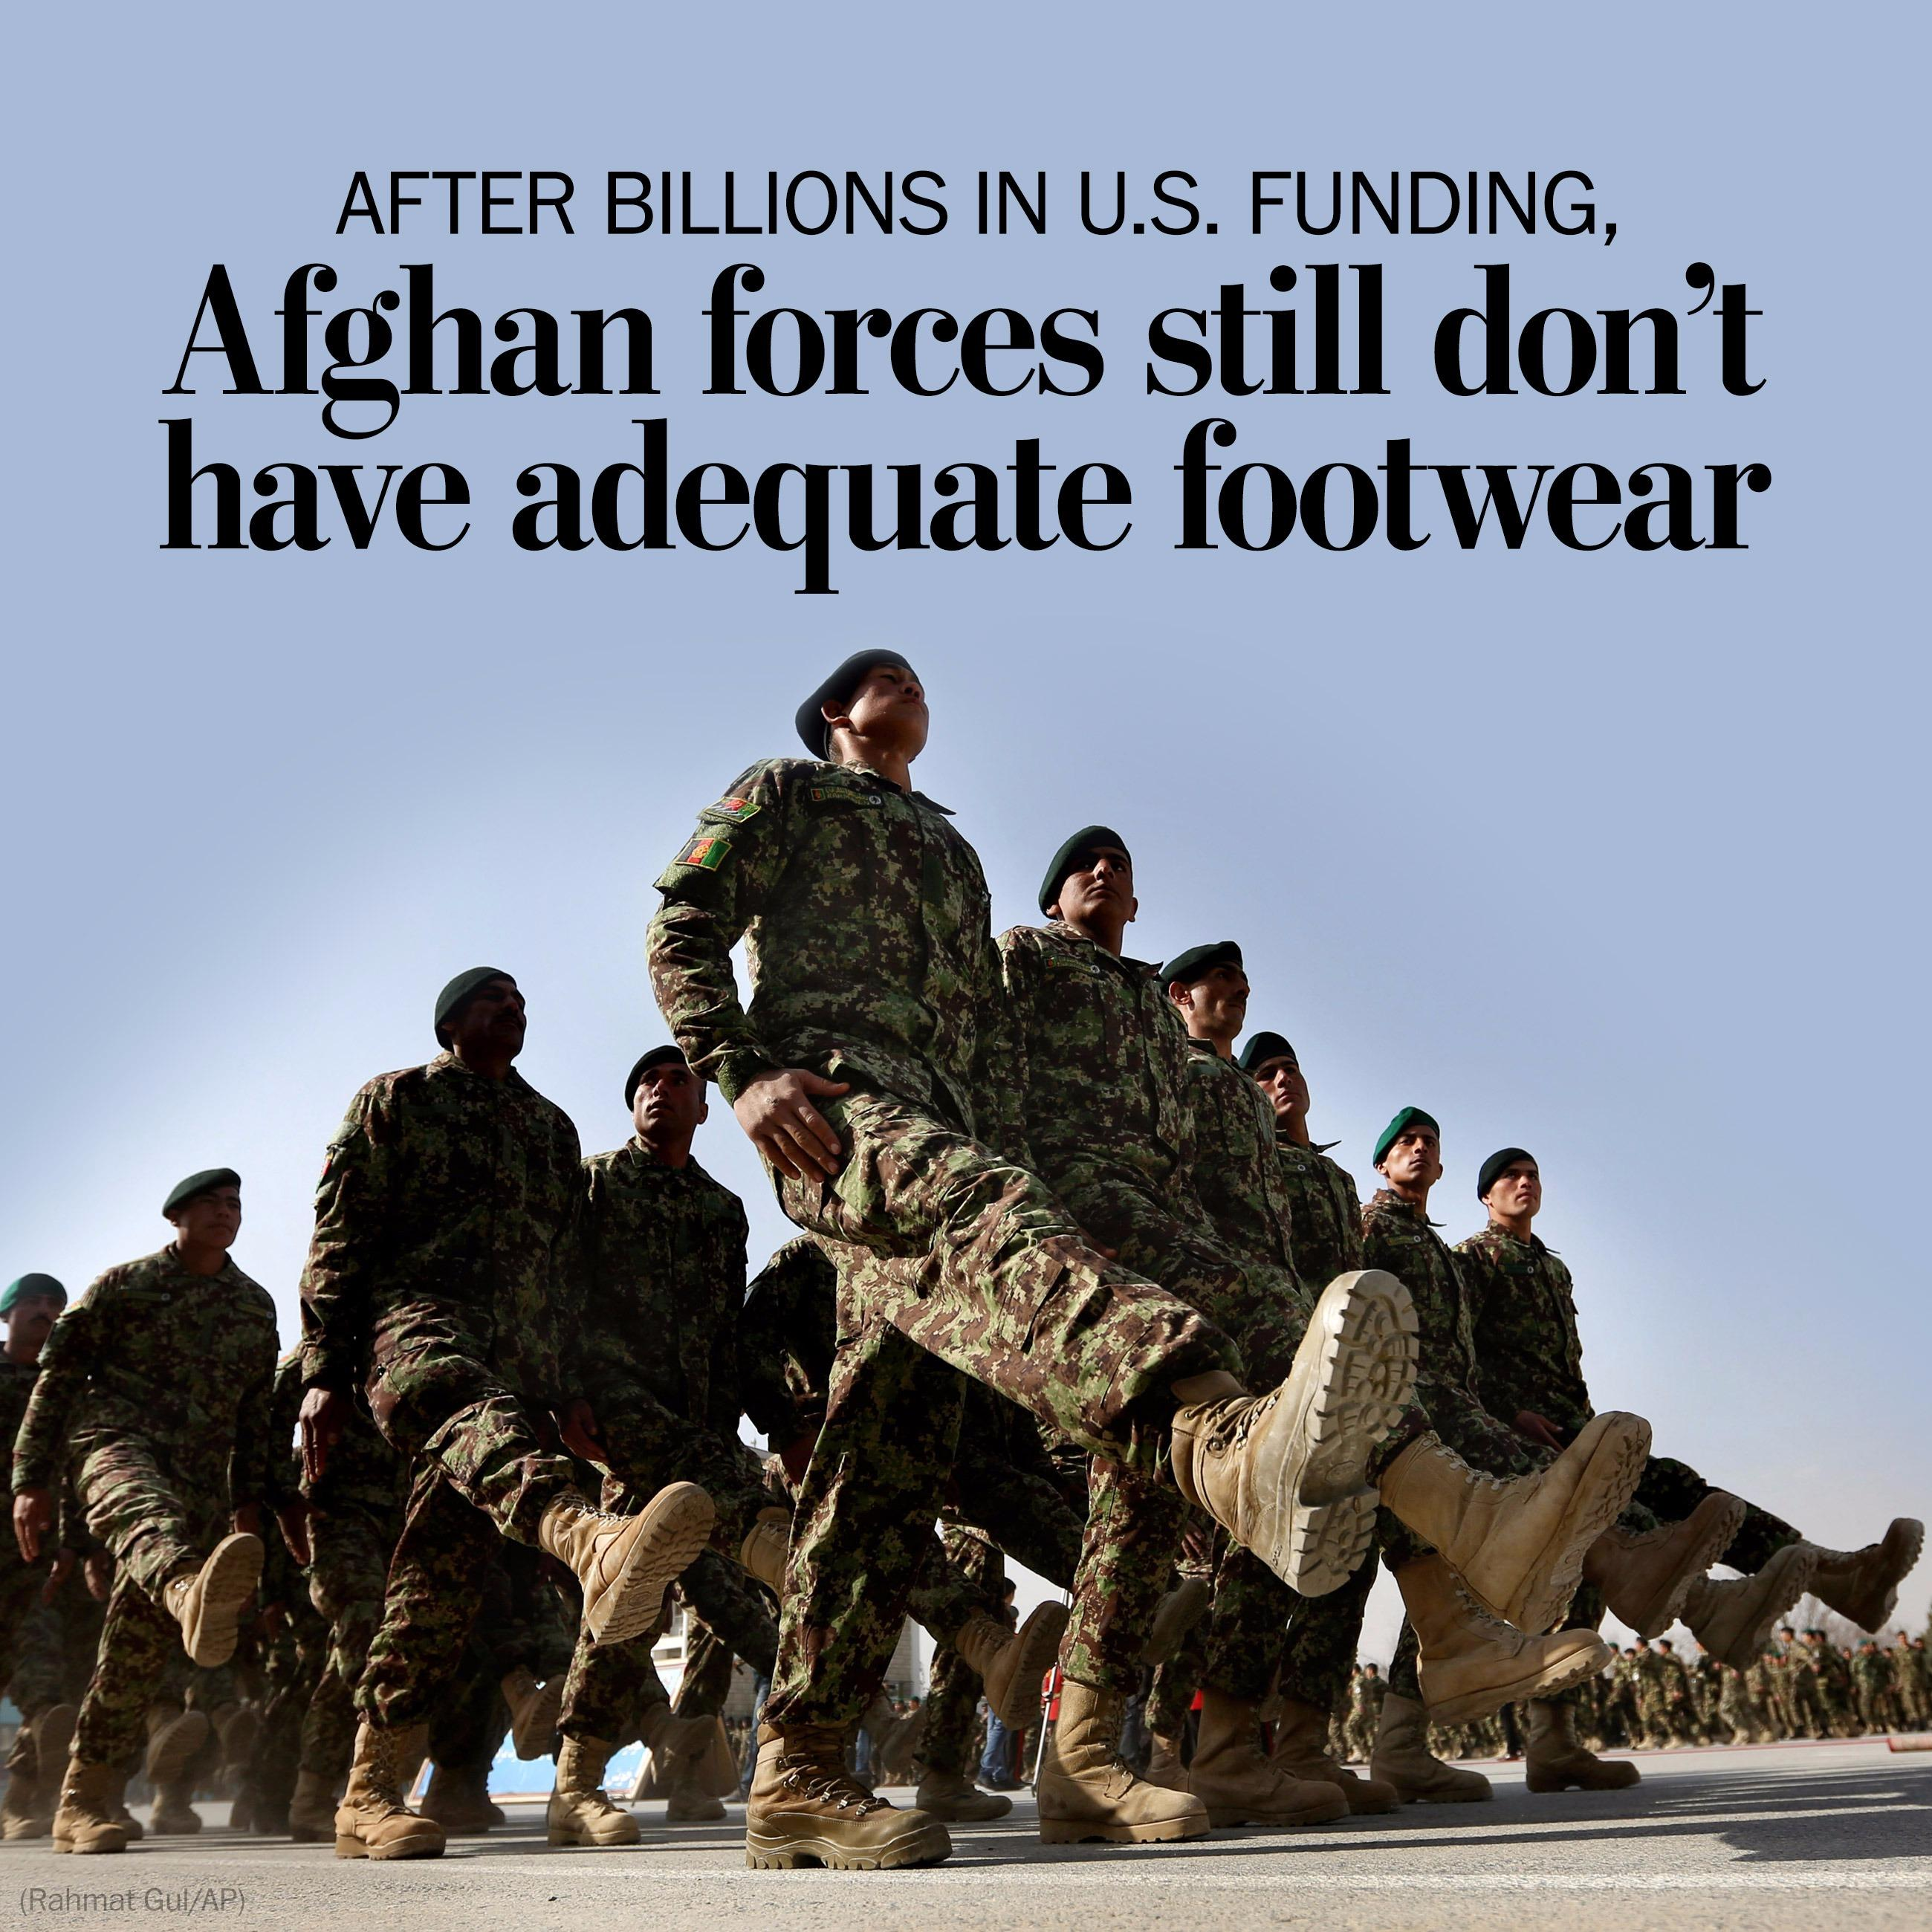 Despite billions in U.S. funding, Afghan forces have a problem with boots